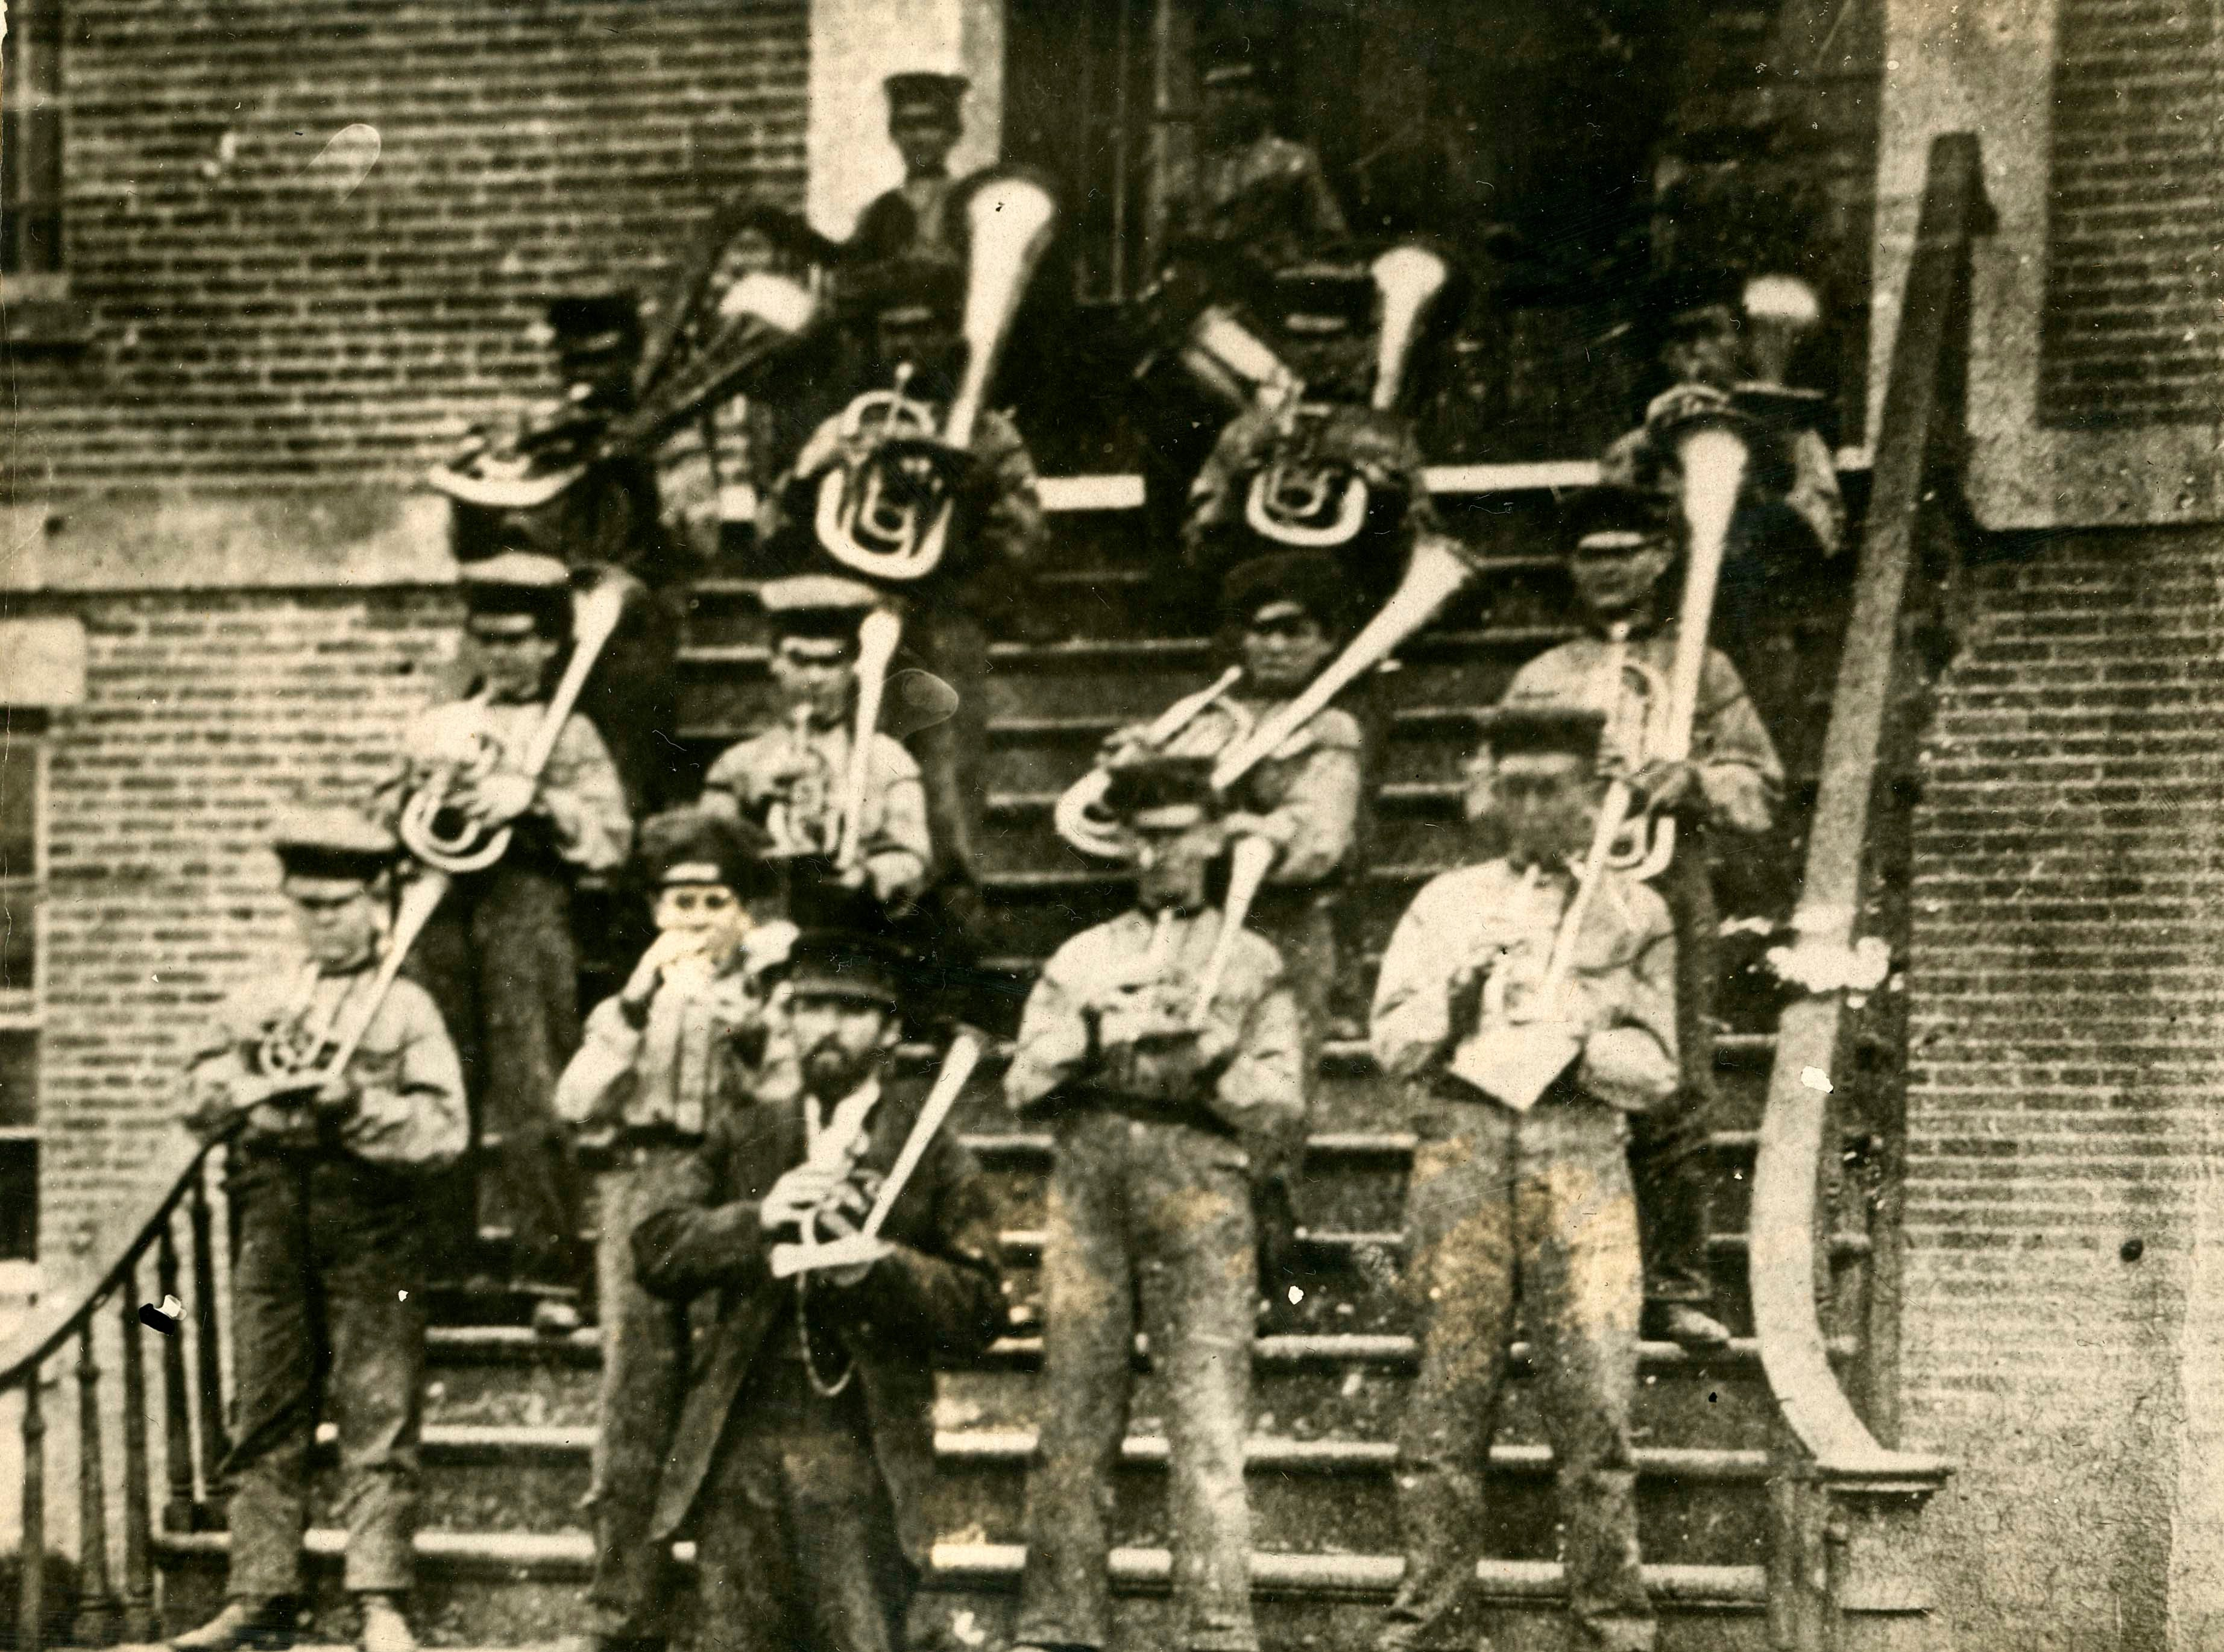 This photo shows the first Reform School Band in 1860.